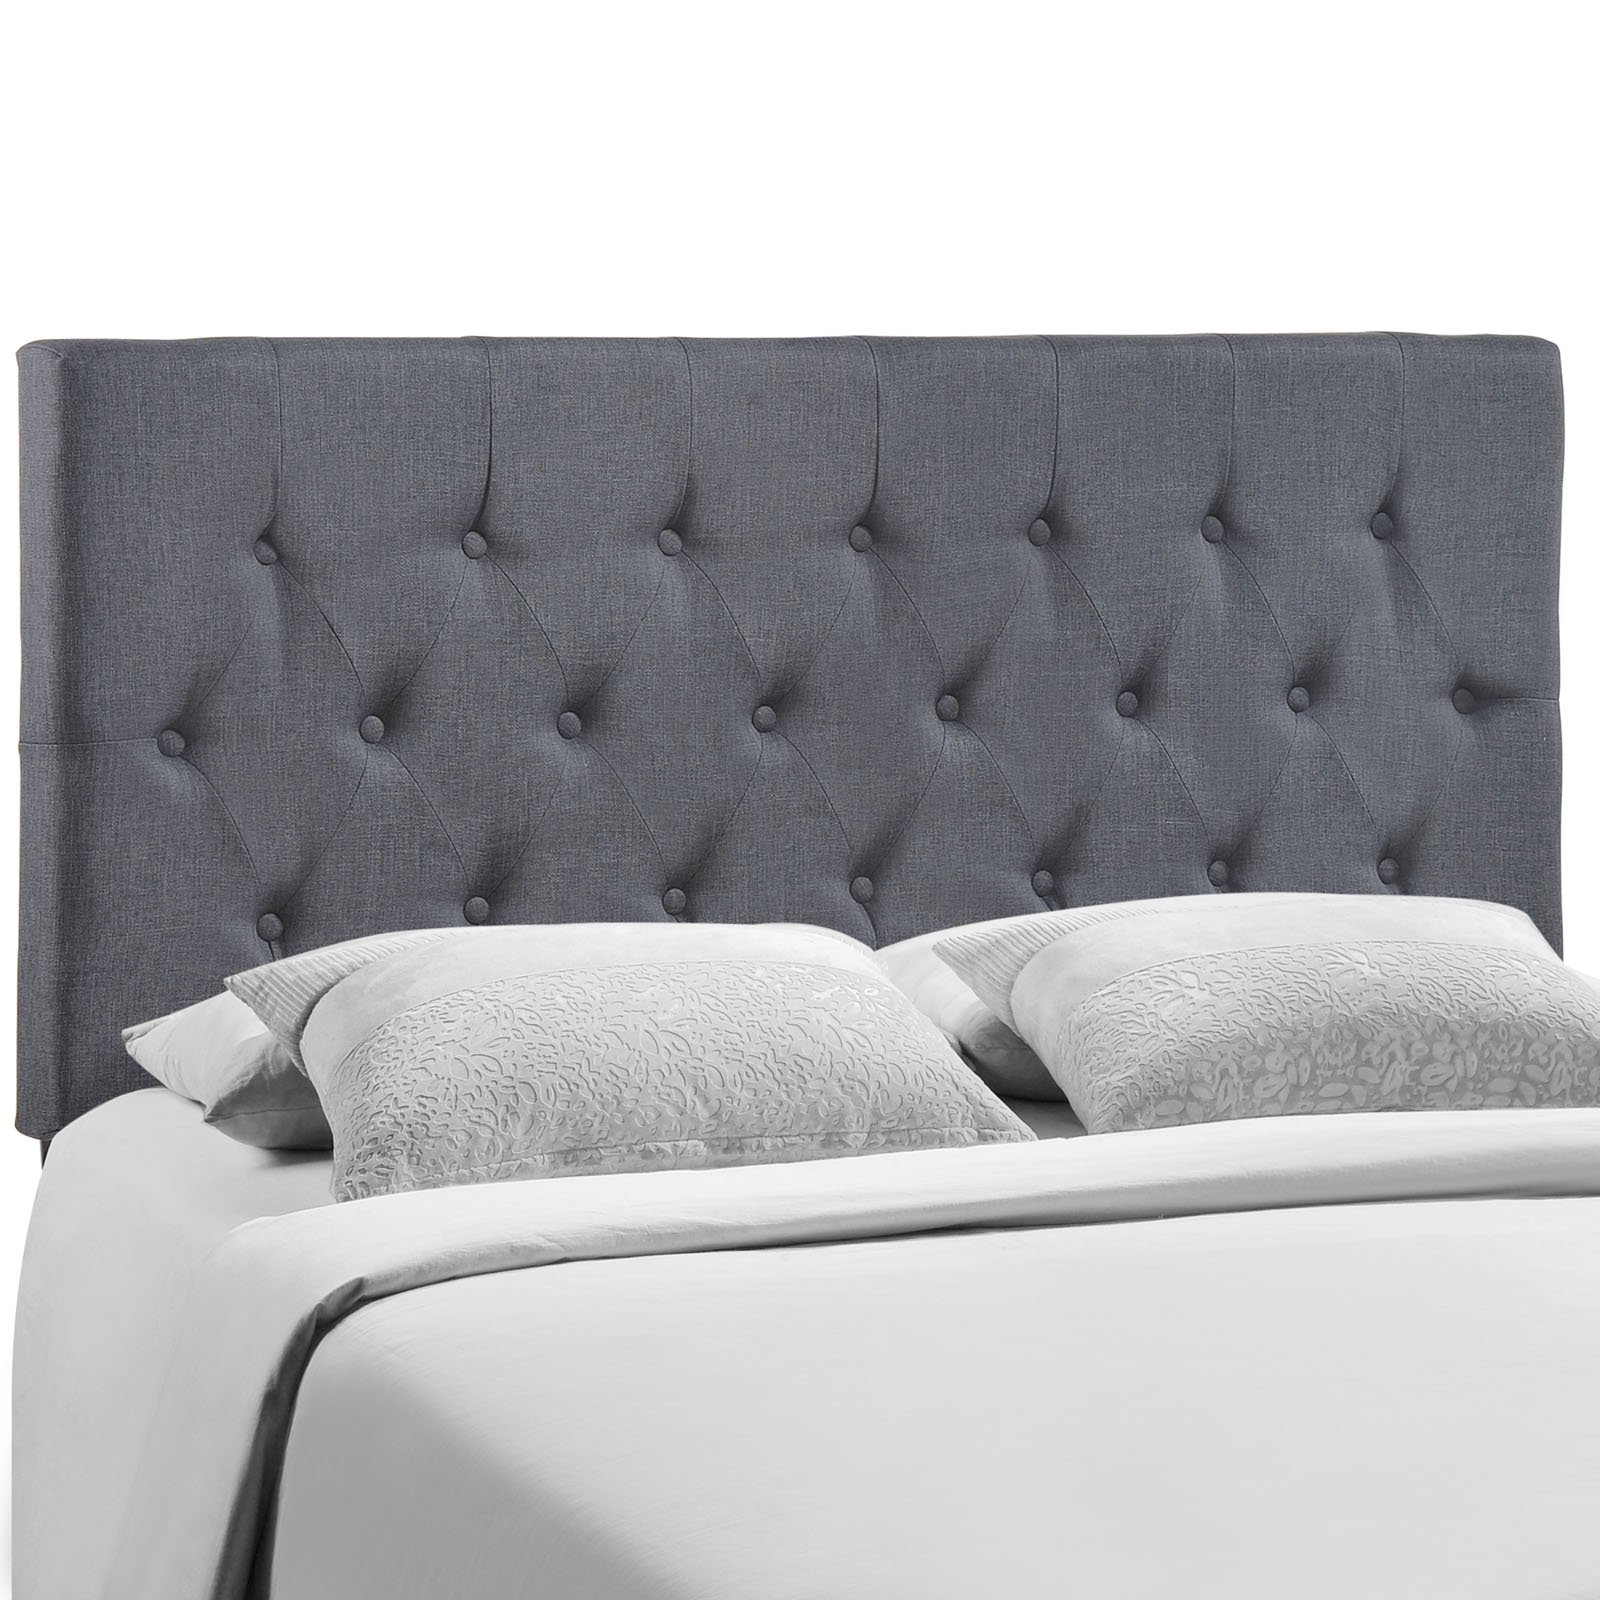 Modway Clique Tufted Button Diamond Pattern Linen Fabric Upholstered Queen Headboard in Smoke